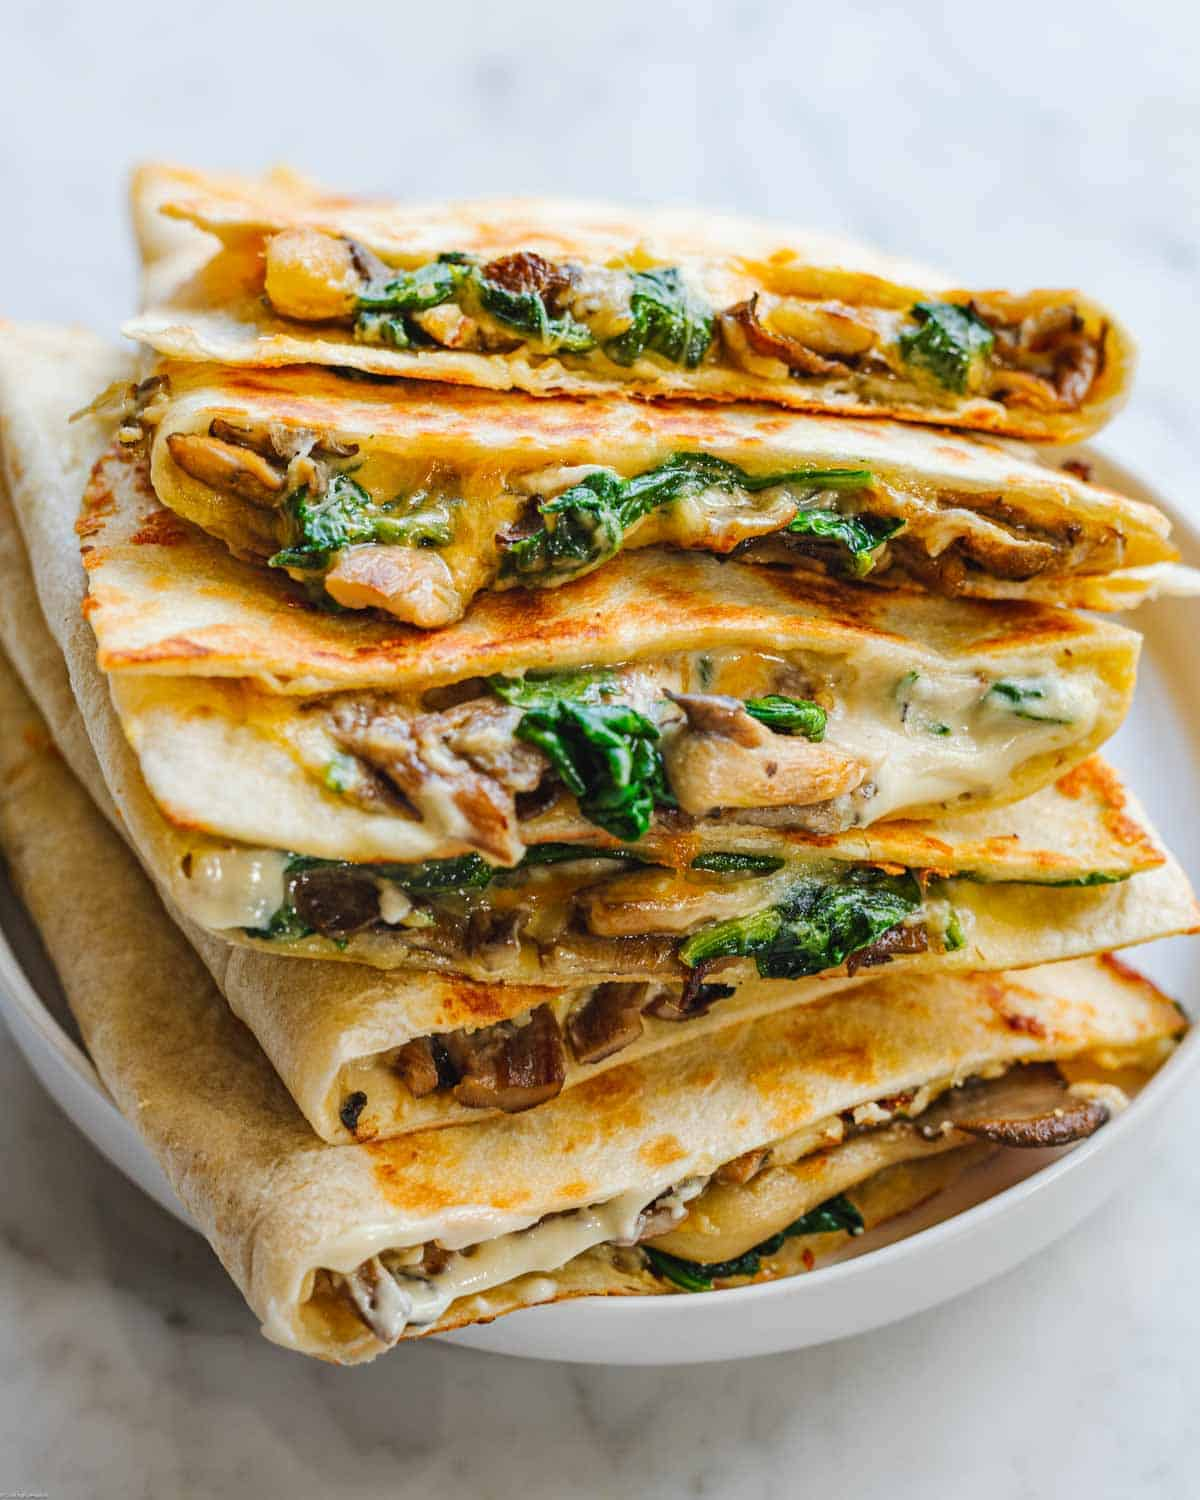 Stacked quesadillas filled with vegan cheese, mushrooms and spinach.